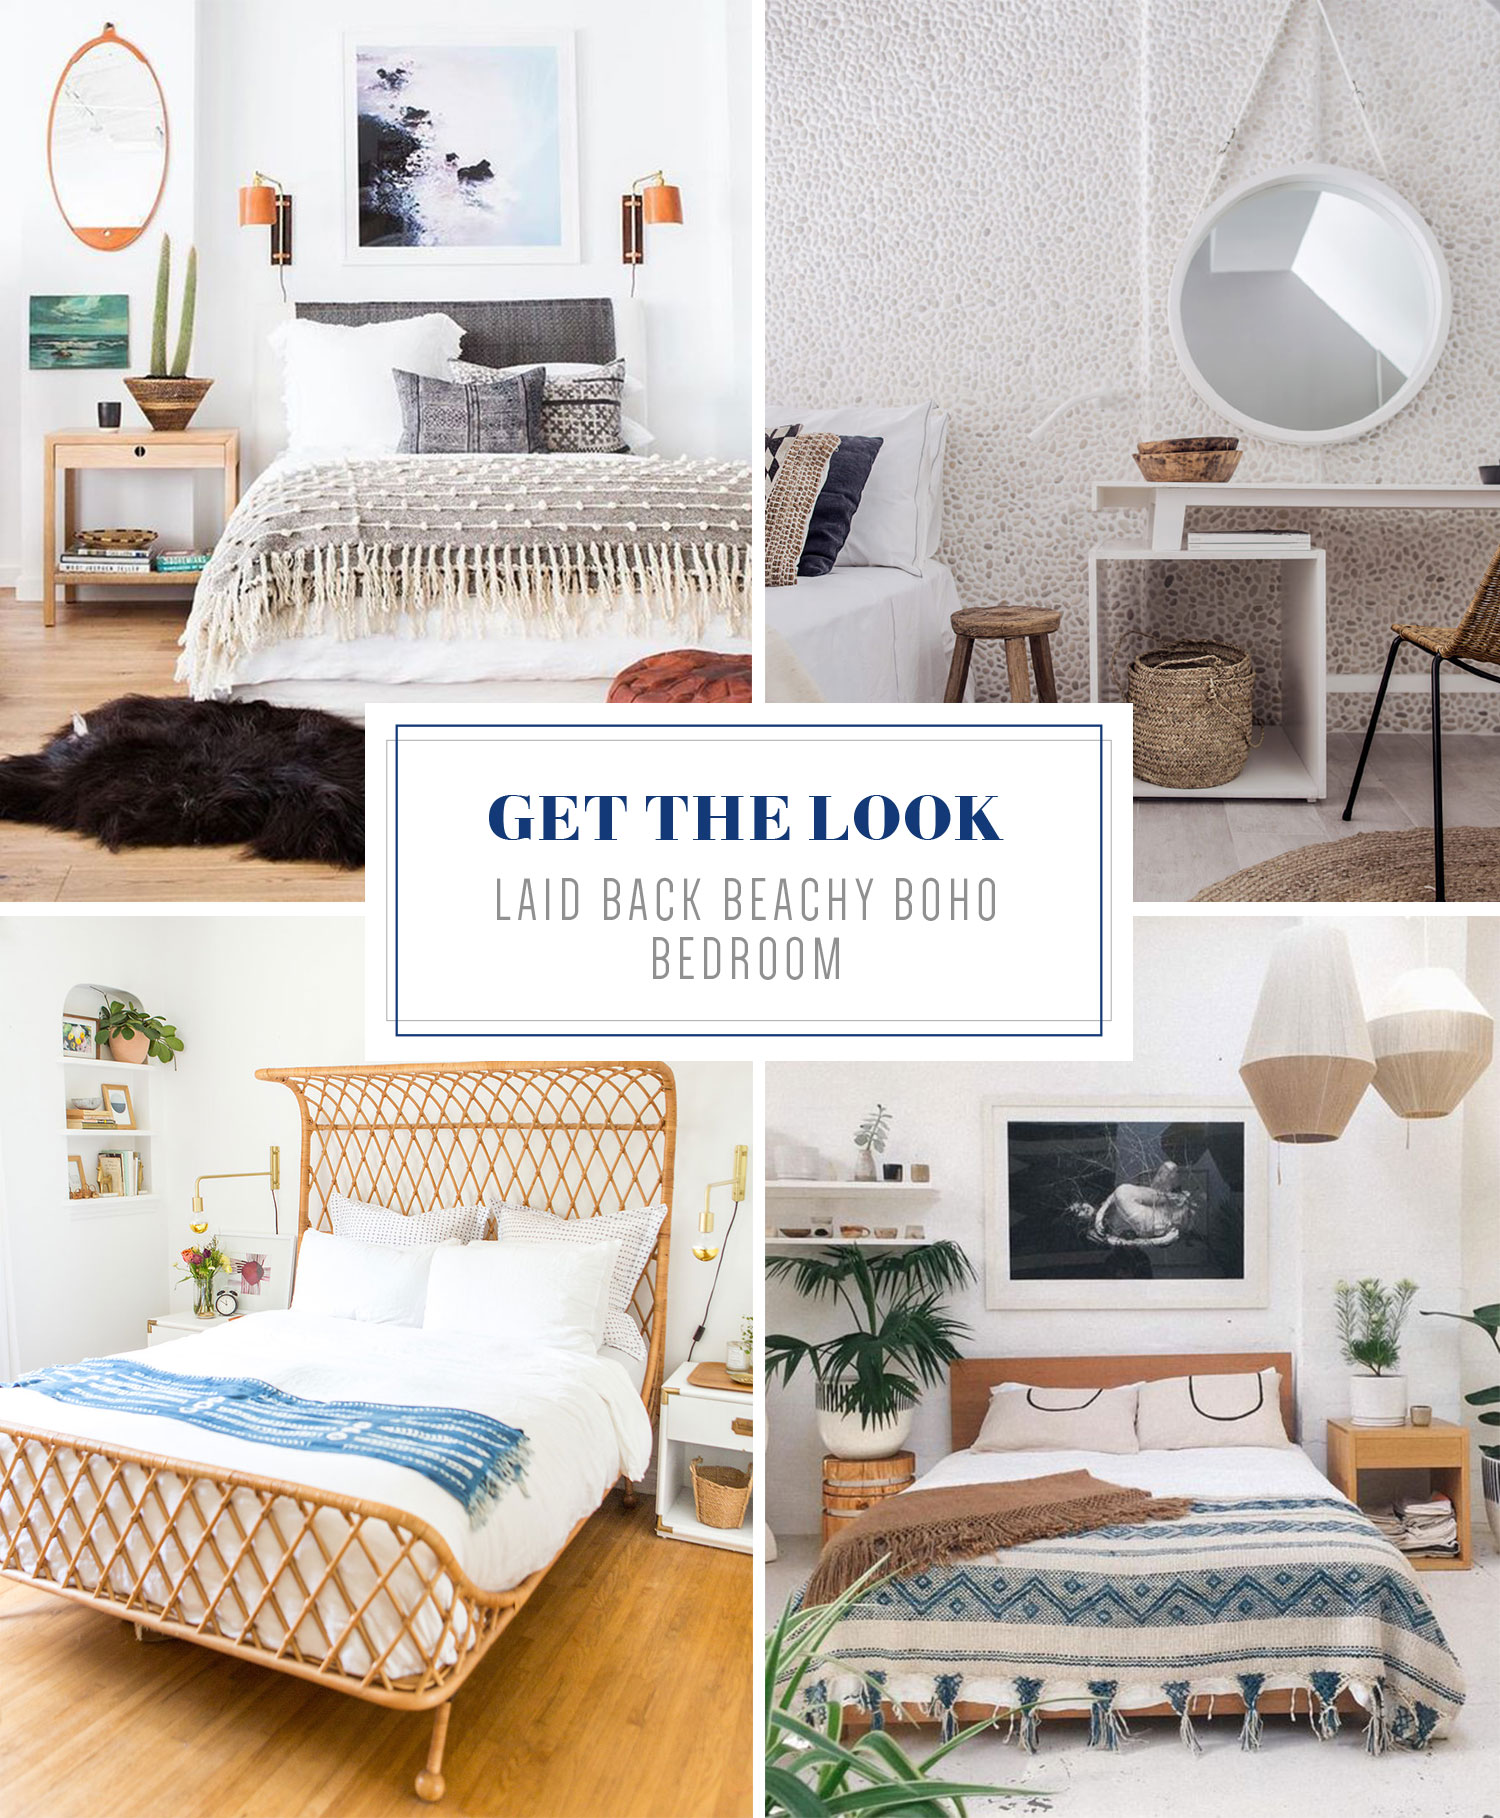 Get that casual, beachy boho vibe in your bedroom! Find out more in this blog post and see Mix & Match Design Company's take on this light and airy bedroom style.